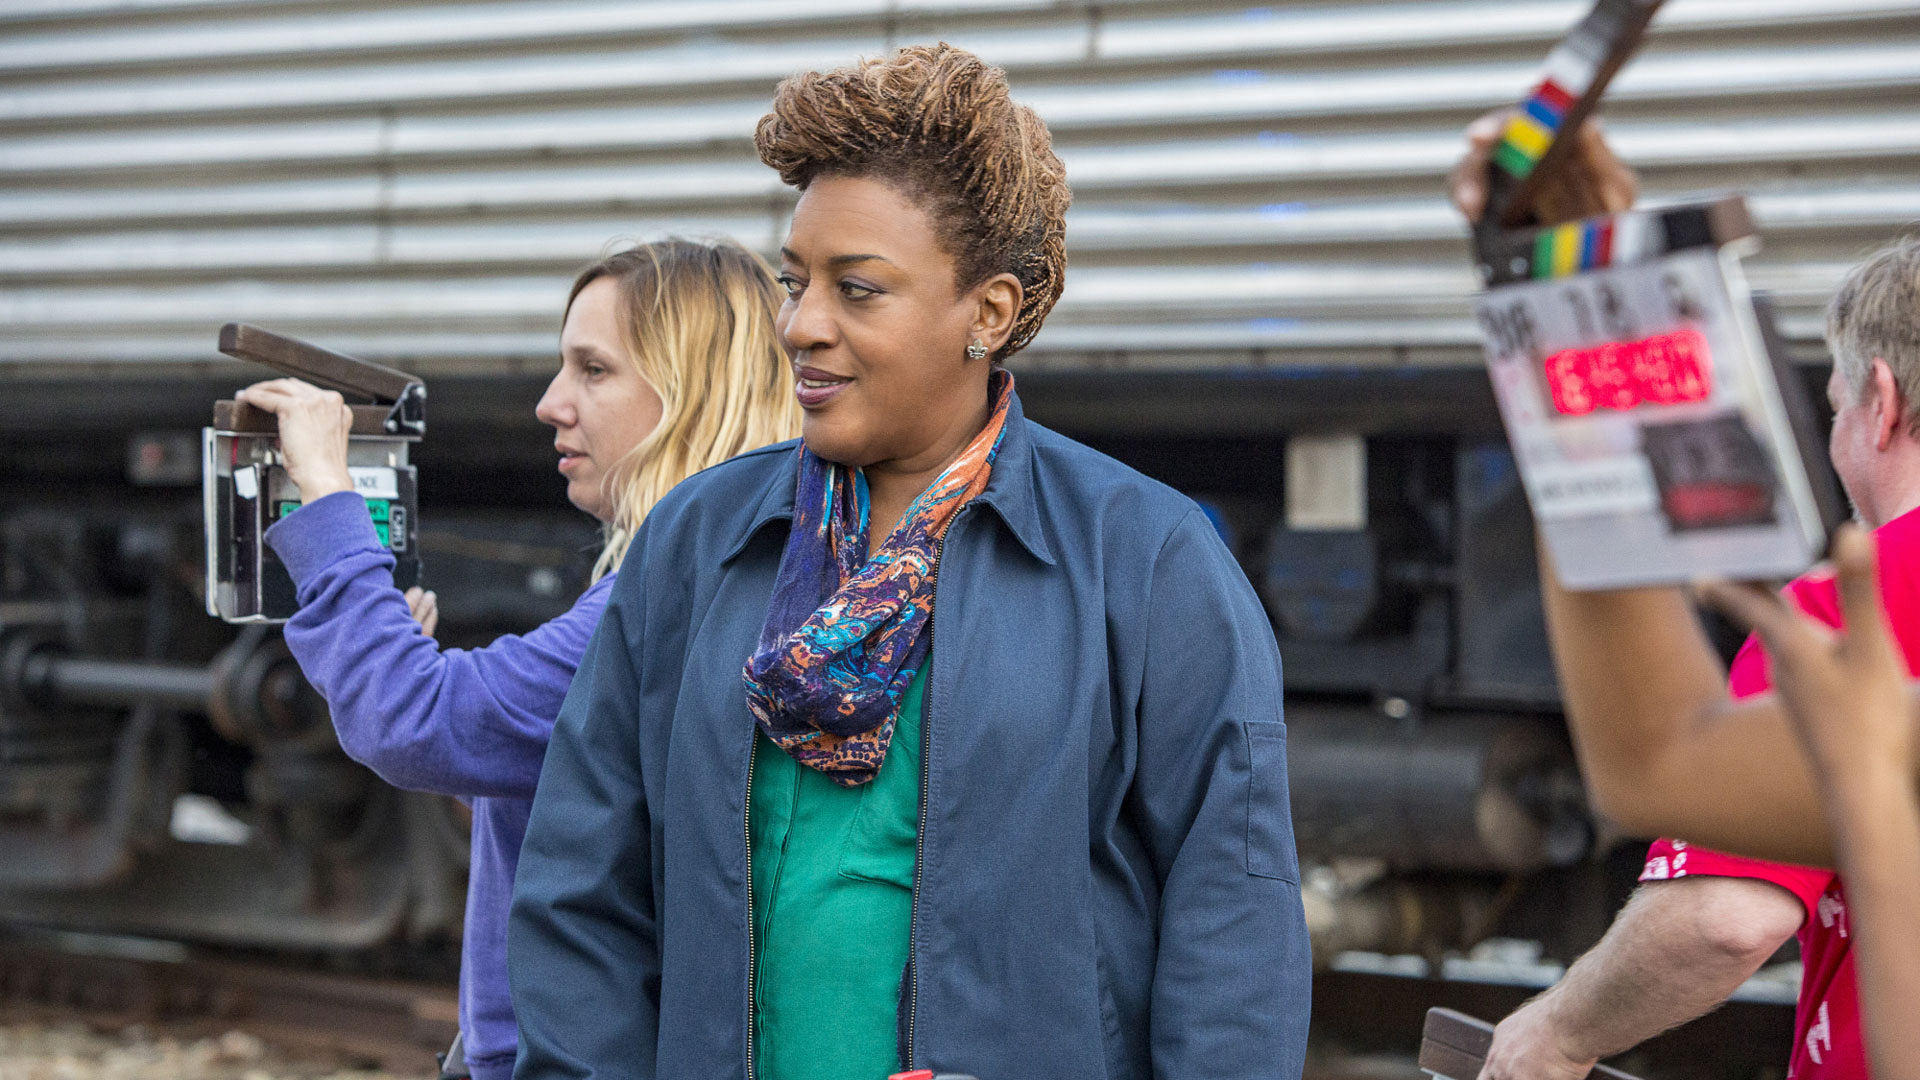 CCH Pounder preps for a scene